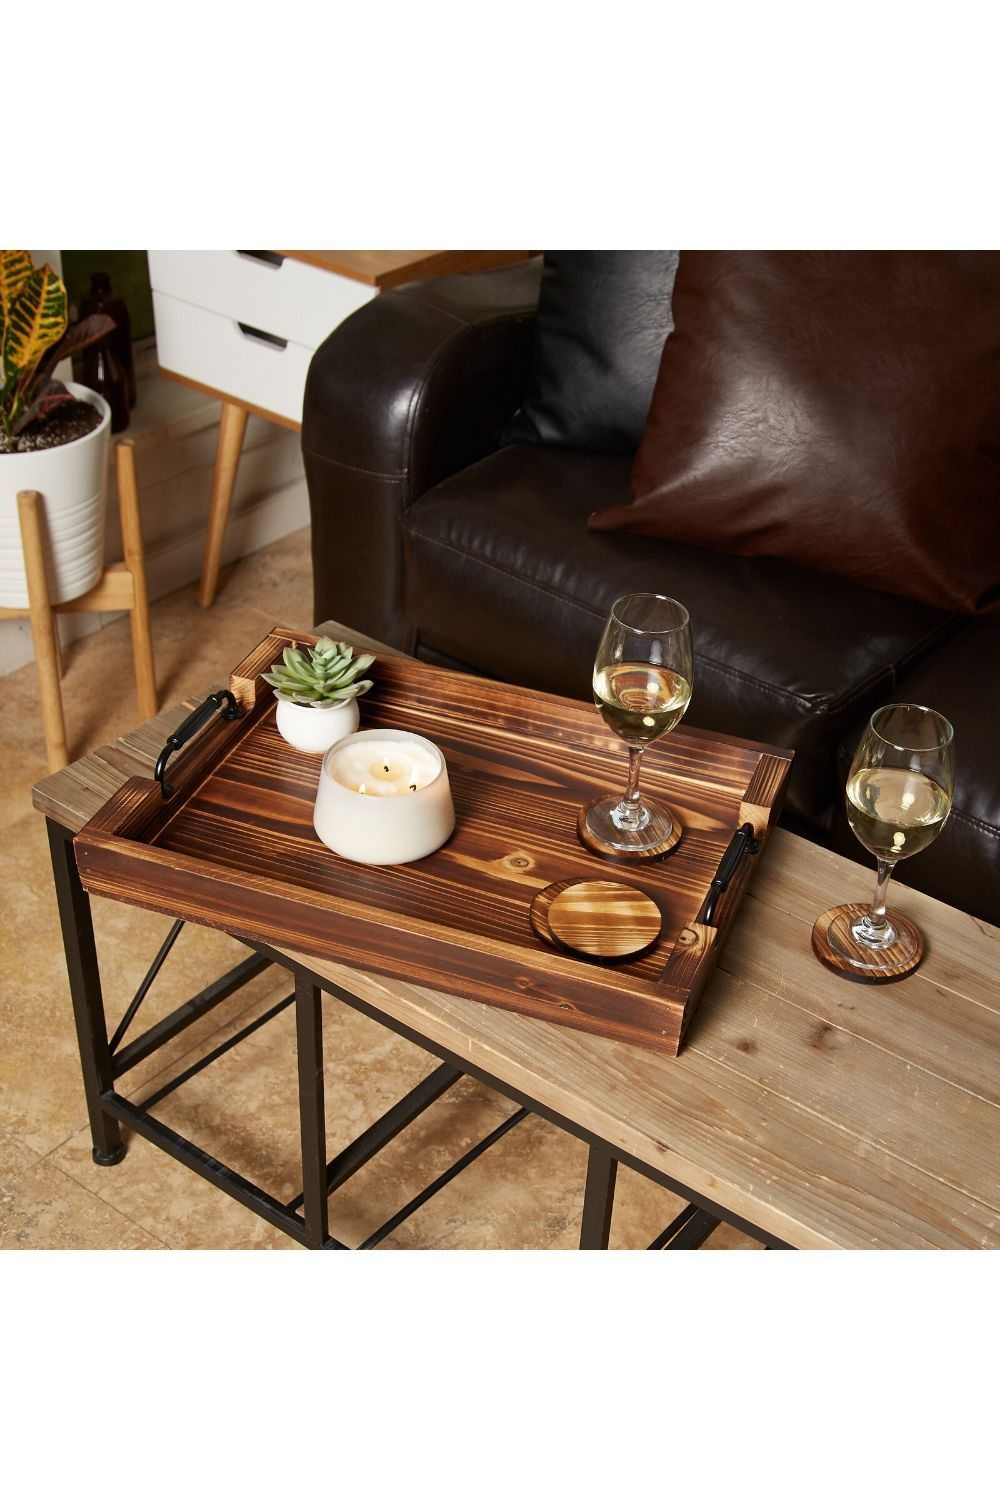 Coffee Table Tray Rustic Serving Trays Coffee Table Organization Coffee Table [ 1500 x 1000 Pixel ]